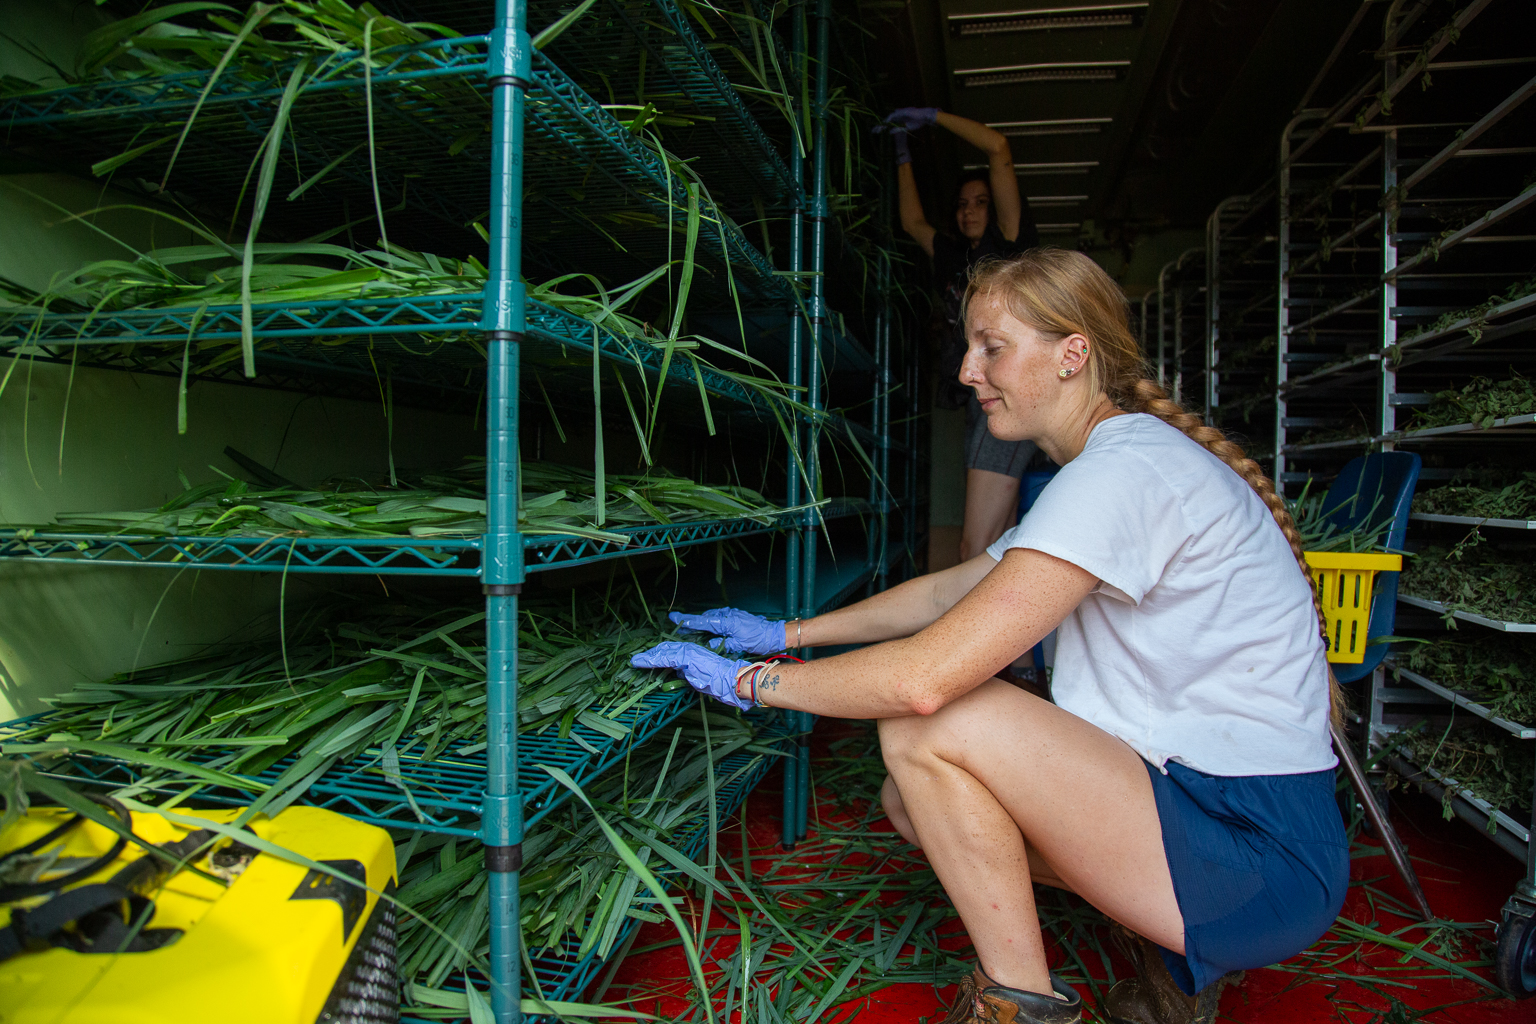 Students load lemongrass into the container to be dried and stored for use in herbal tea